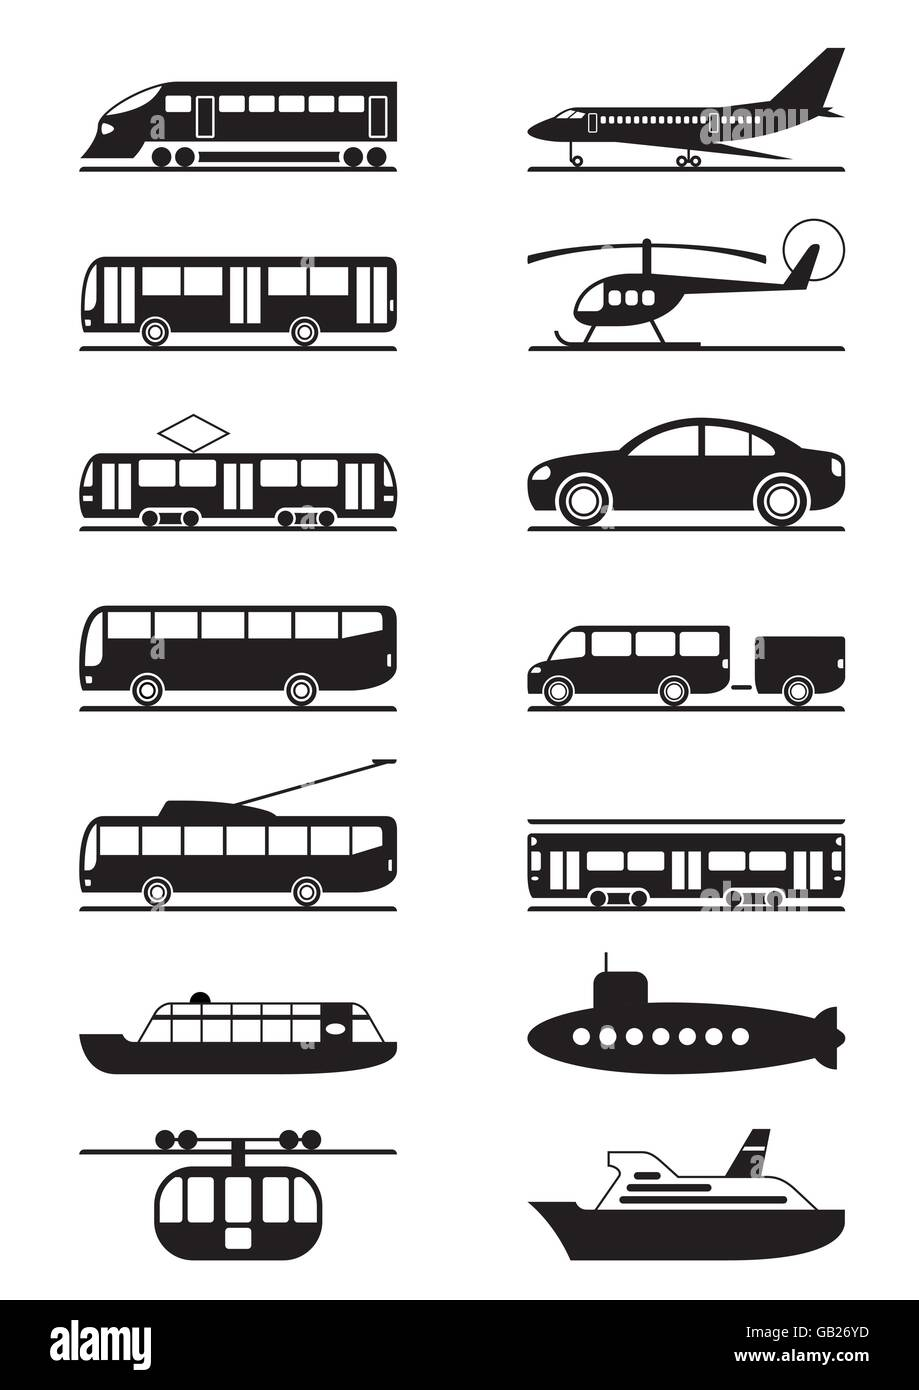 Transport public de voyageurs et - vector illustration Photo Stock